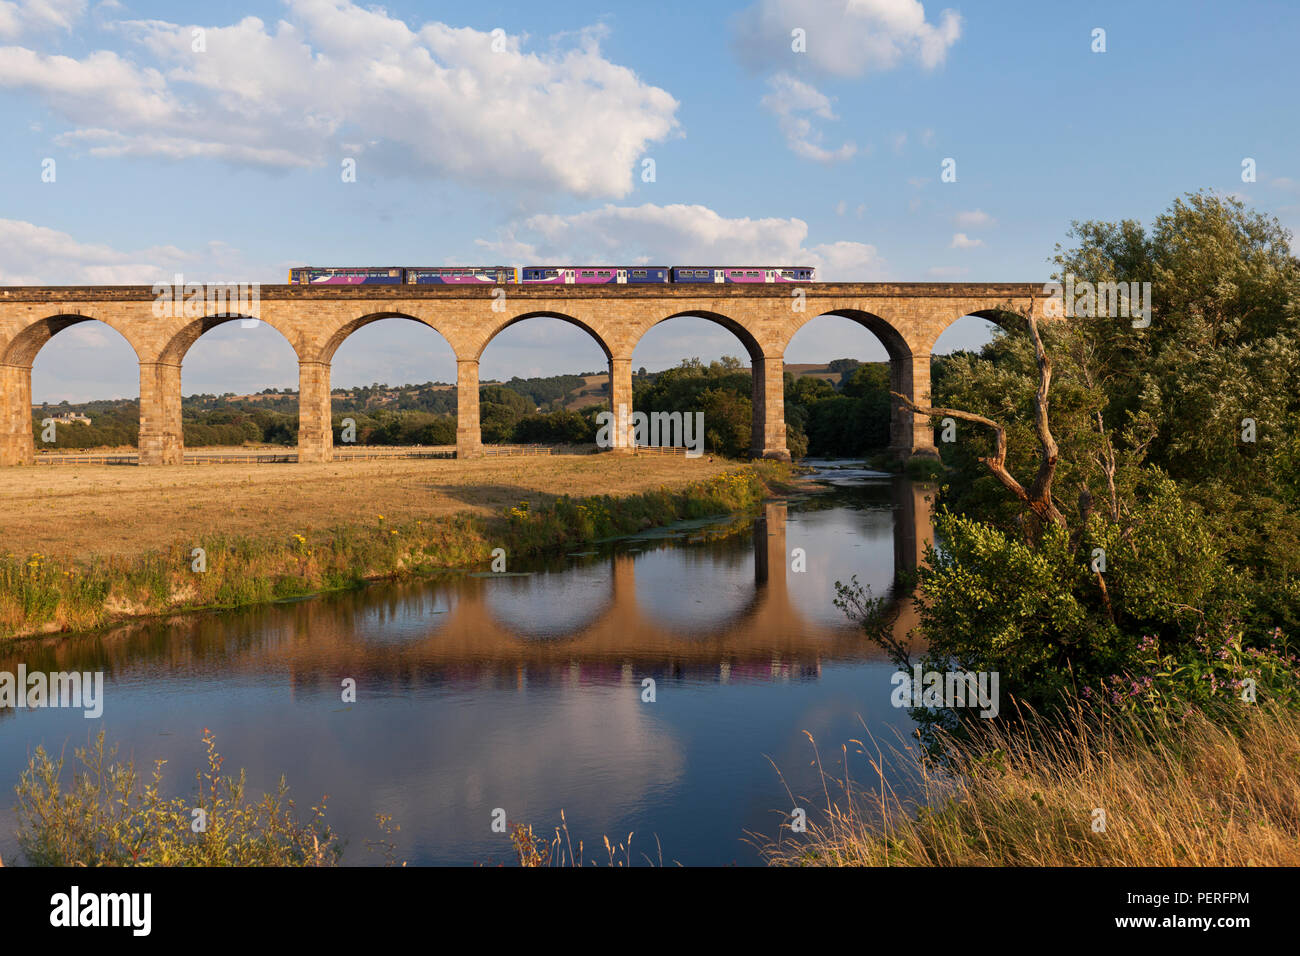 A Northern rail Leeds to Knareborough train crossing Wharfedale viaduct (River Wharf)  formed of a class 150 sprinter + 144 pacer - Stock Image